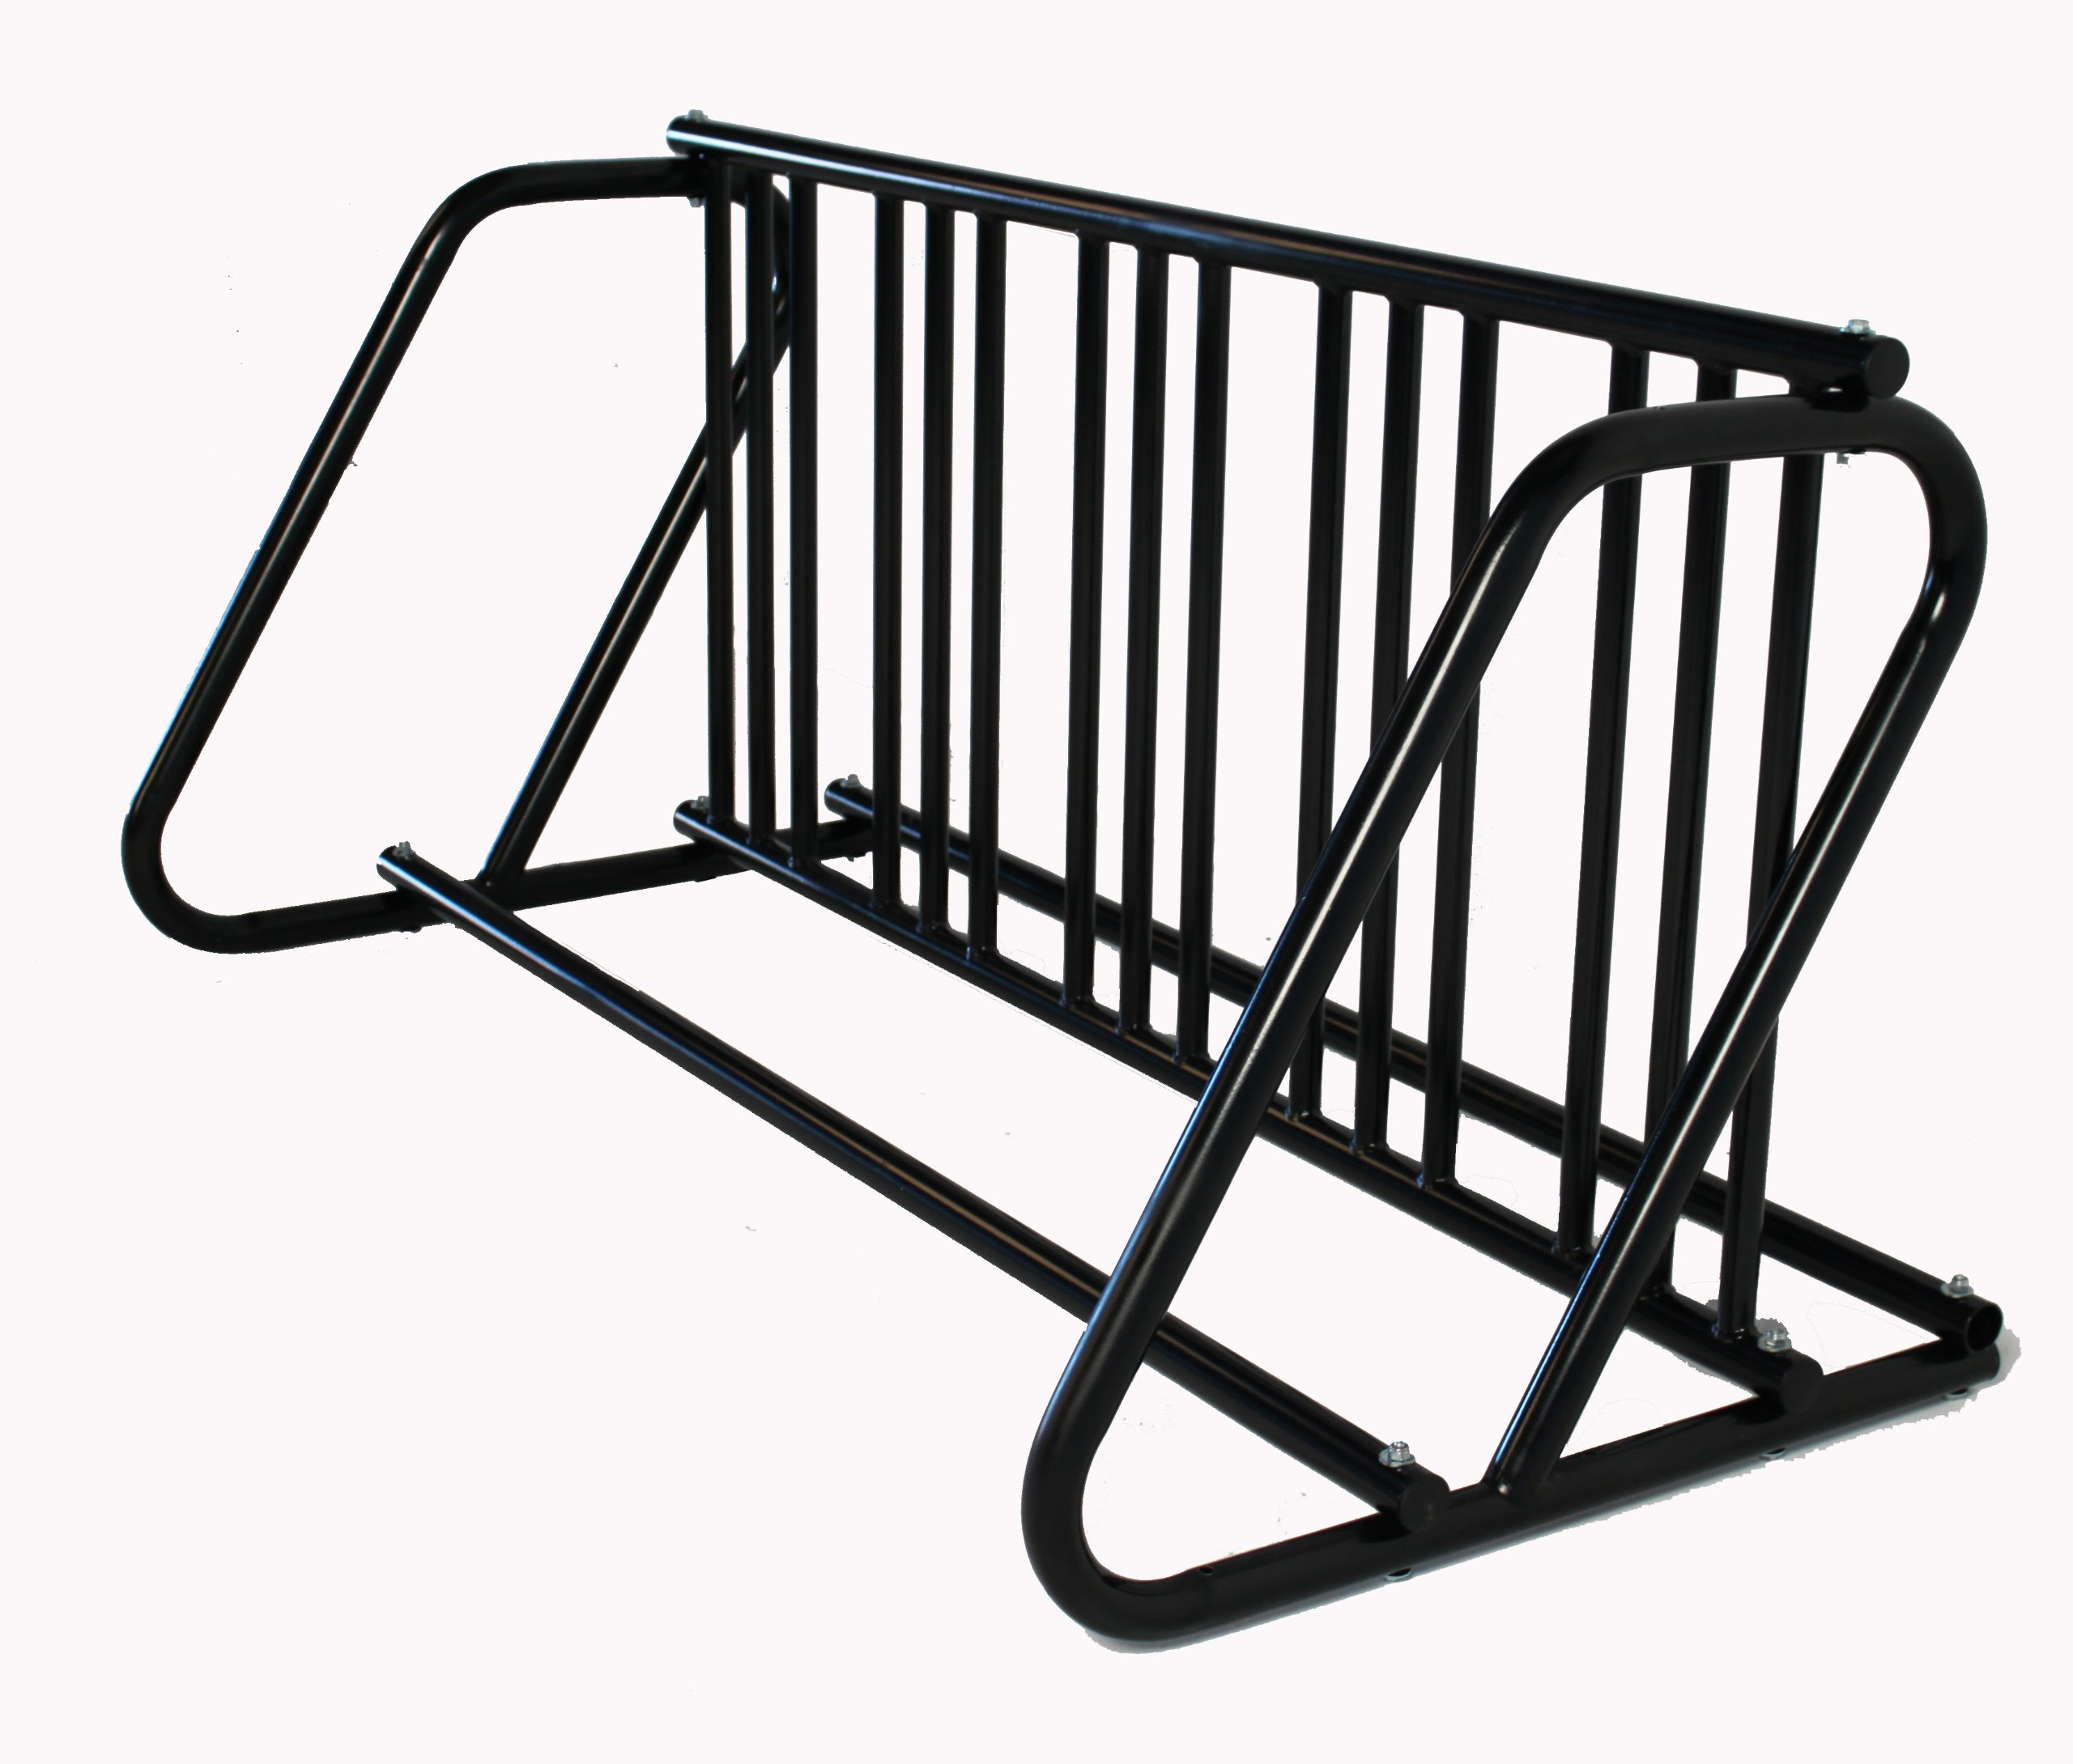 Hollywood Racks Dual Use 5-10 Bike Commercial Parking Rack by Hollywood Racks (Image #3)